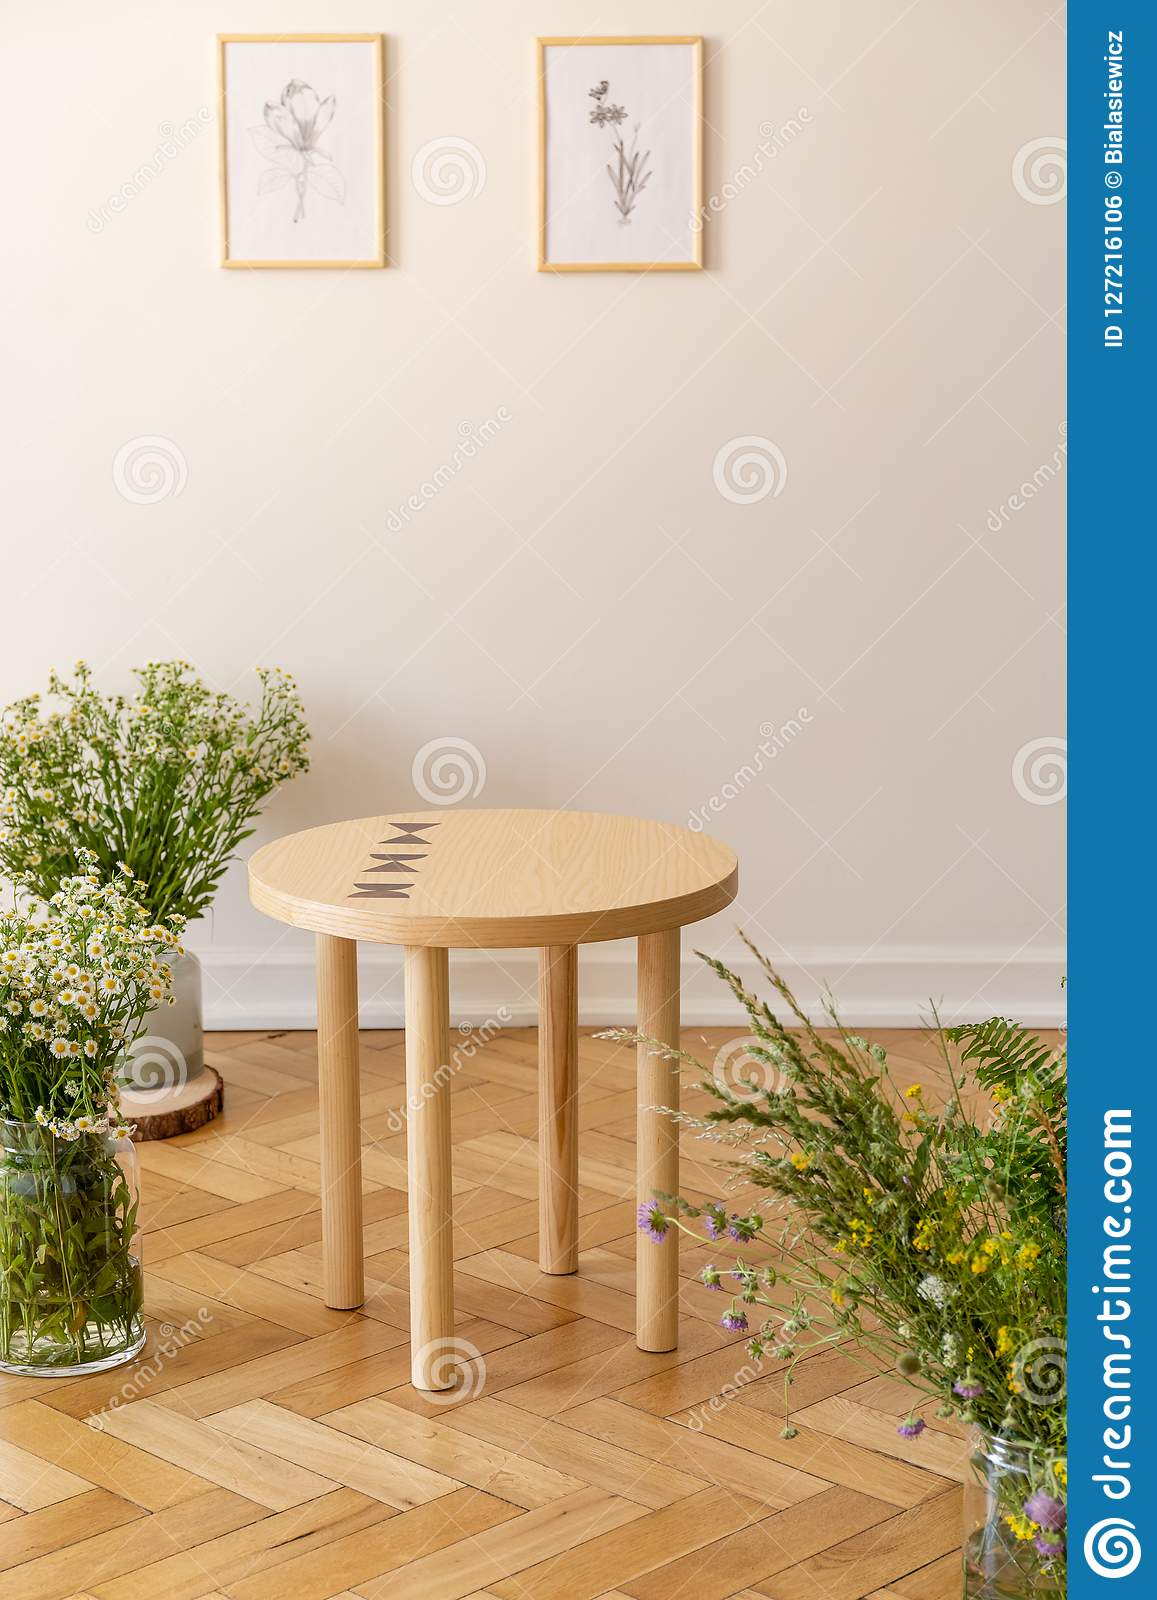 A small round wooden table surrounded by fresh meadow flowers standing on a parquet against a light beige wall with illustrations